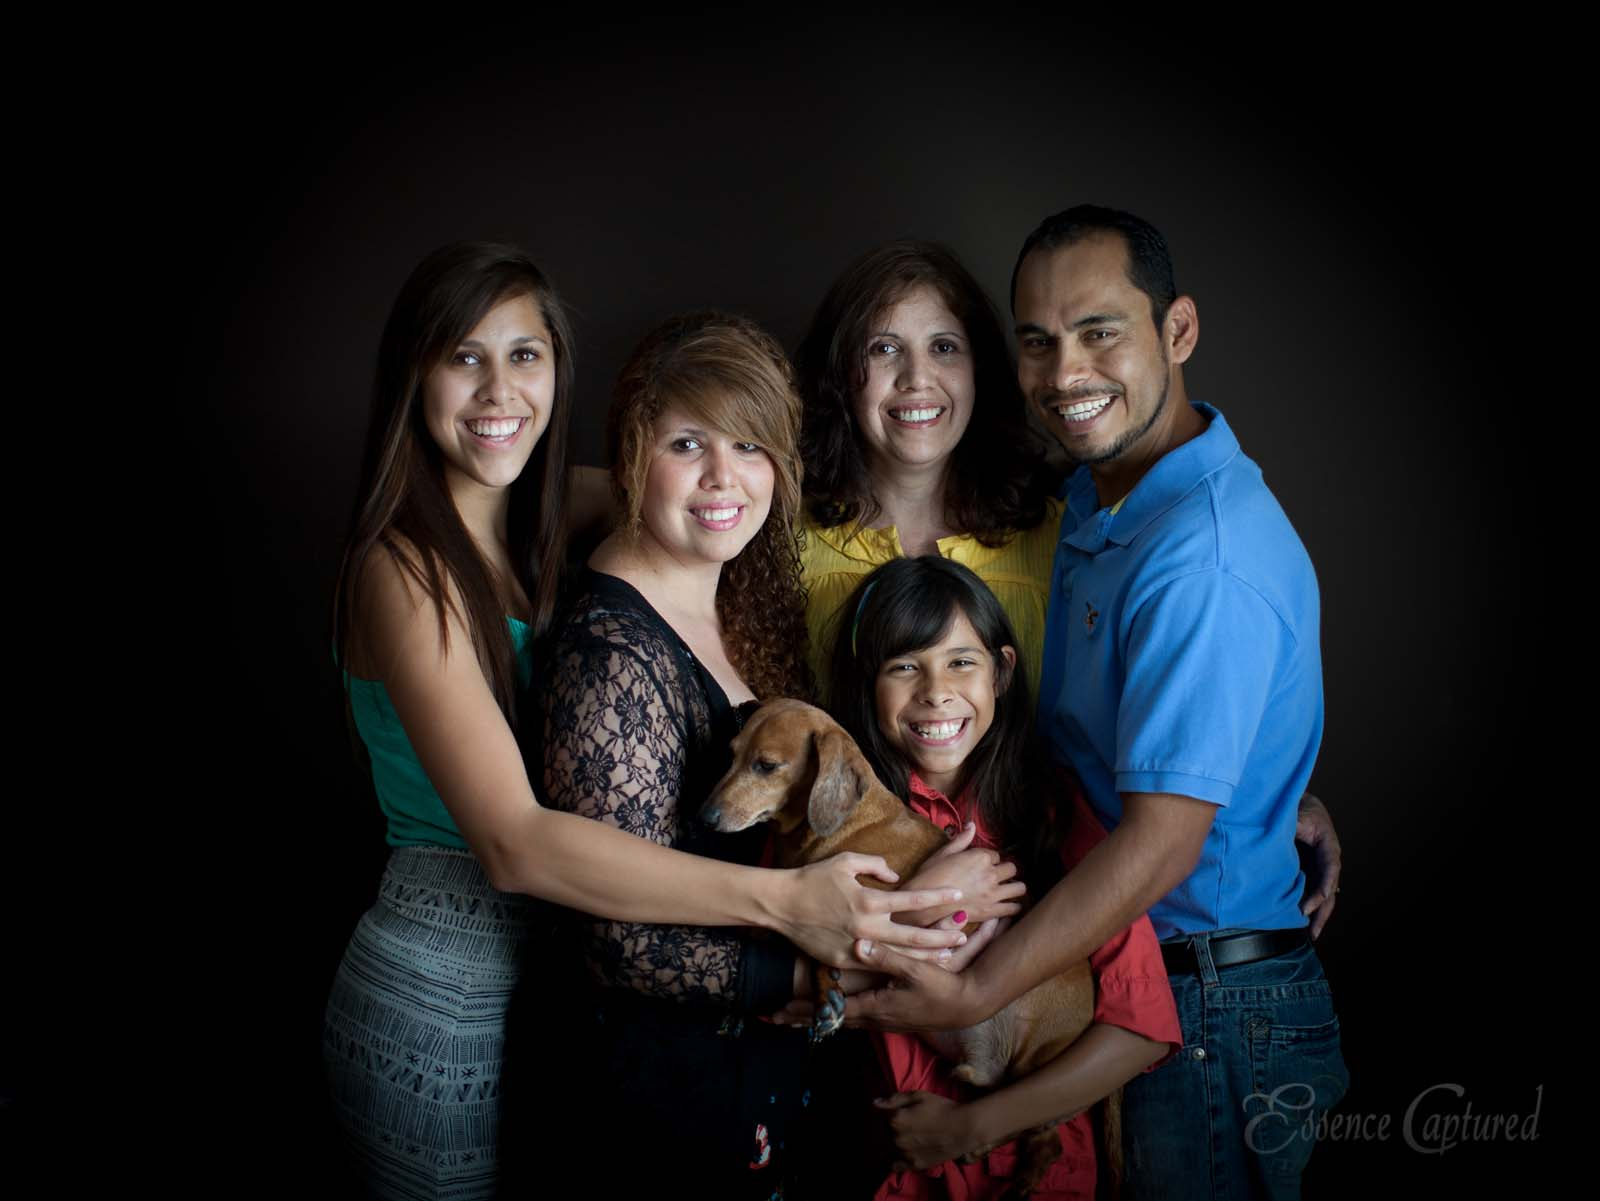 family of 5 plus dog portrait with dark backdrop